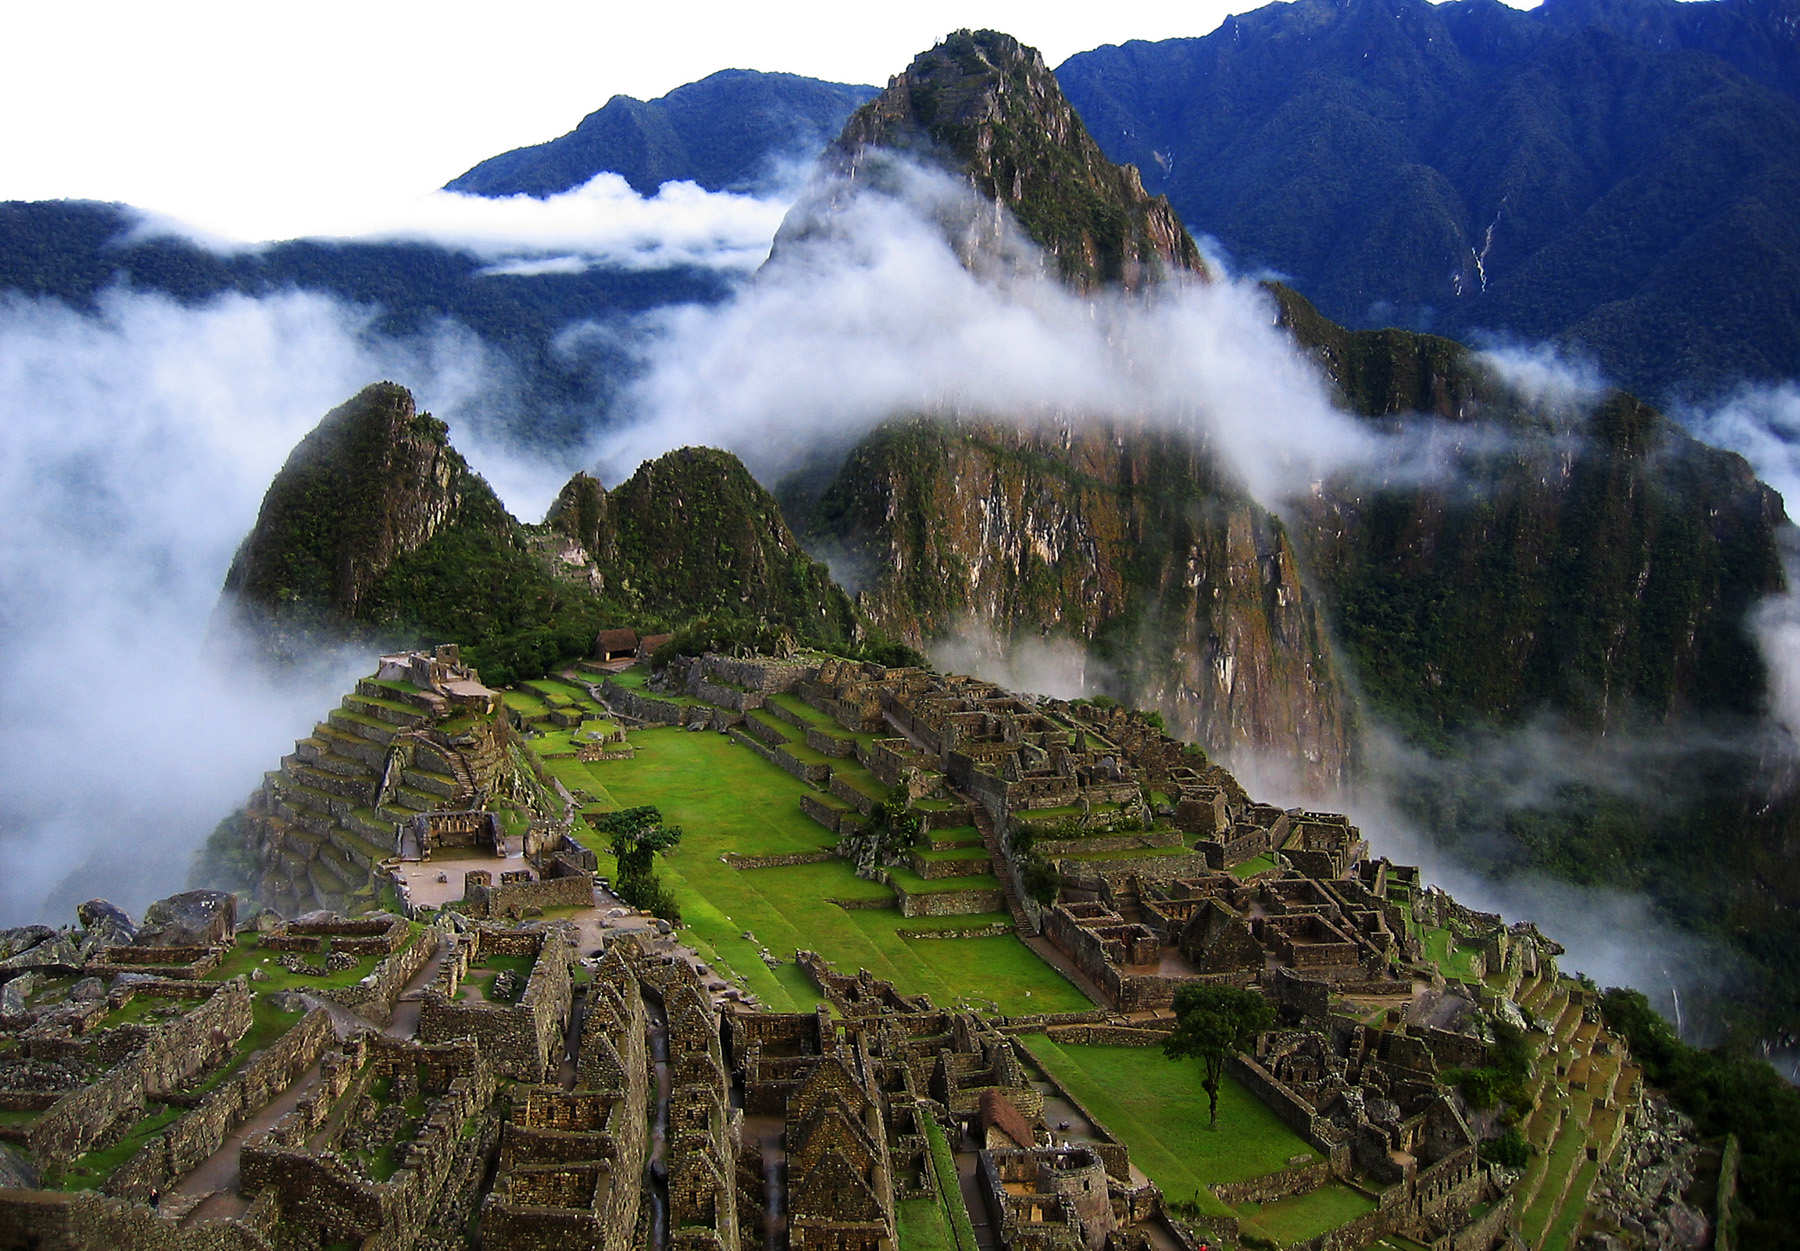 Spiritual Pilgrimage to Cusco & Machu Picchu Peru - Oct 28 - Nov 4, 2017